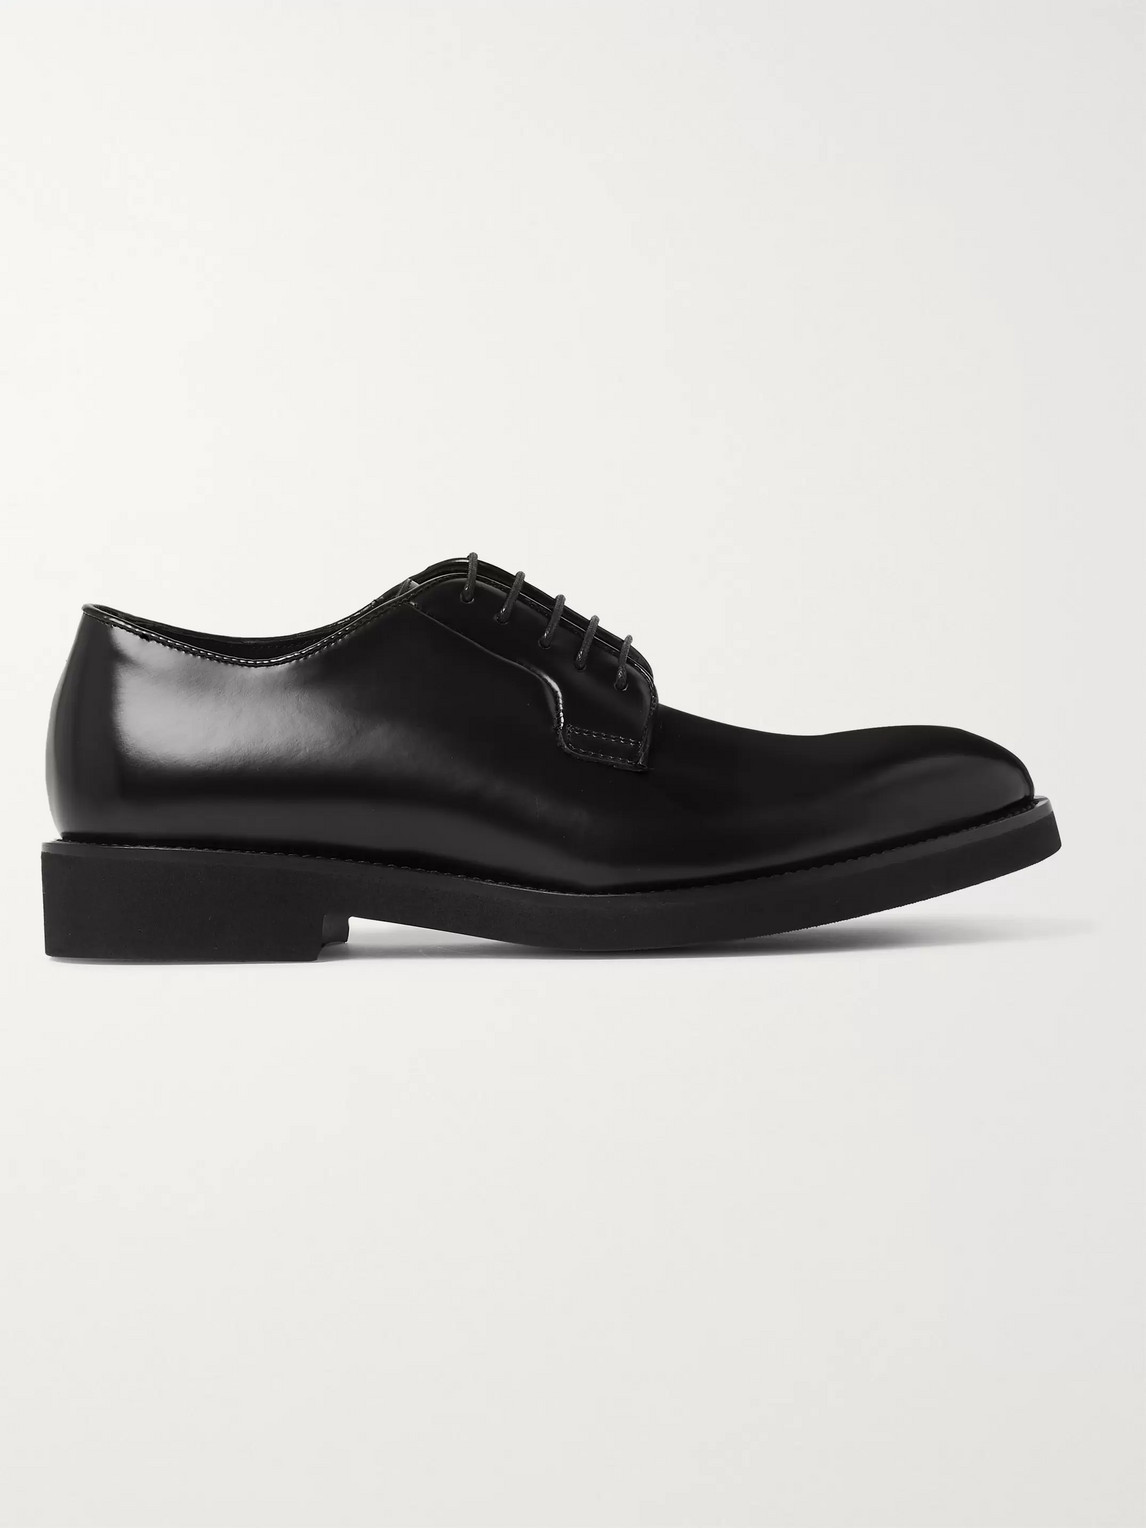 PAUL SMITH Oxfords LUDLOW POLISHED-LEATHER DERBY SHOES